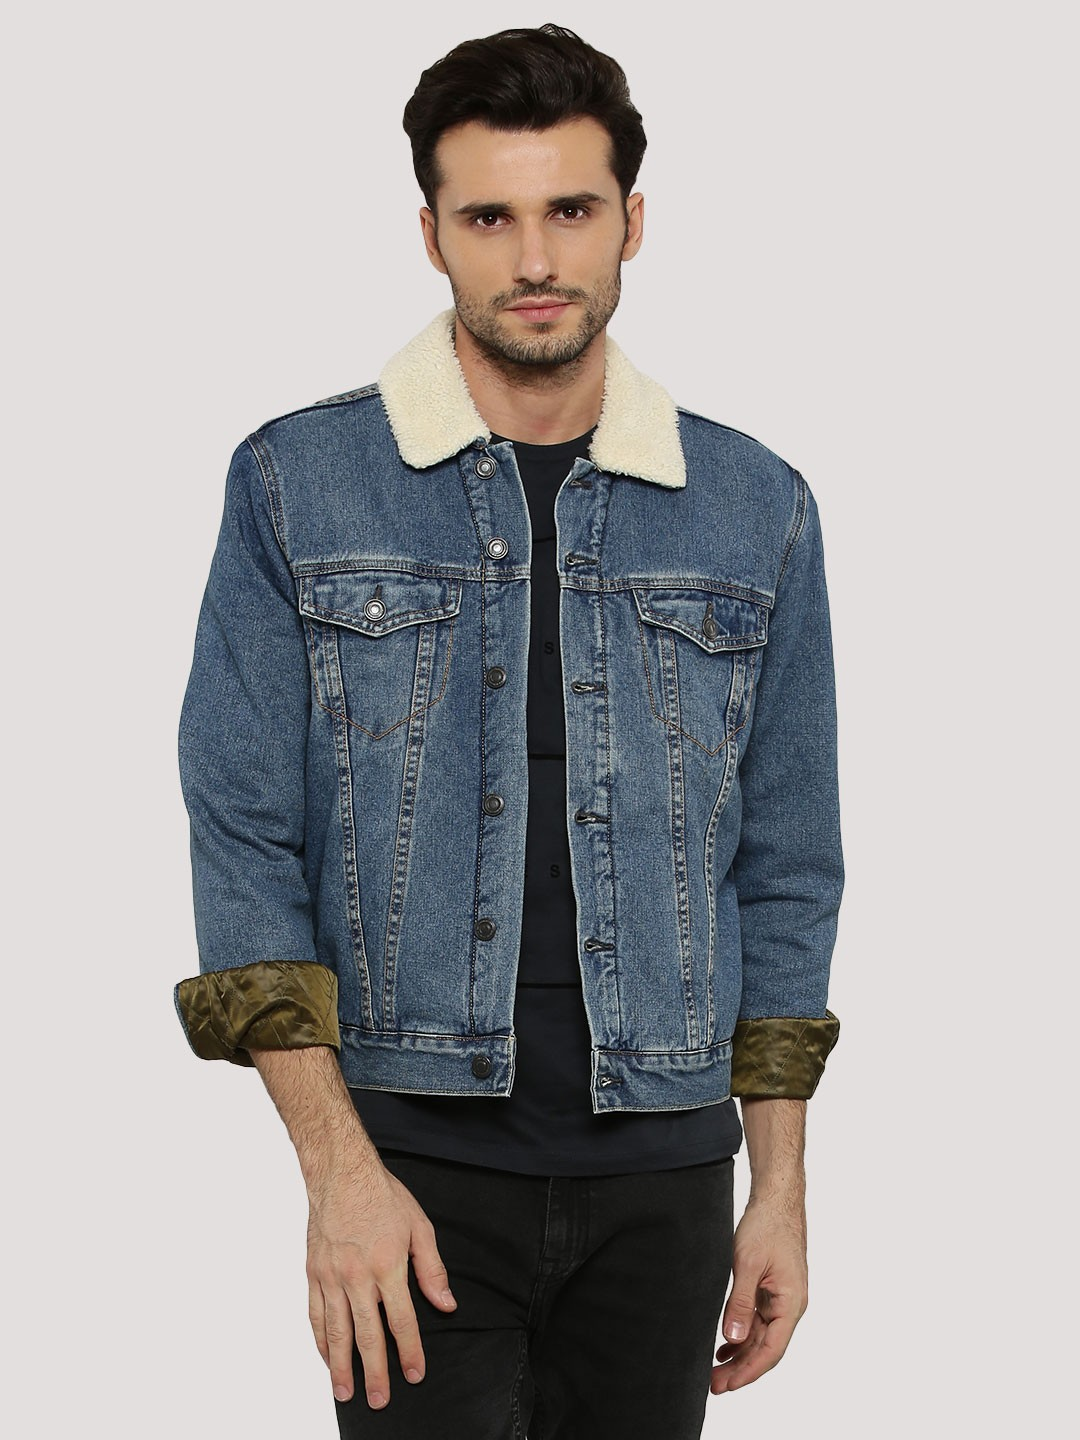 Discover the range of men's denim jackets from ASOS. Shop from a variety of colours and styles, from vintage to oversized denim jackets. Shop now at ASOS. Burton Menswear denim jacket with borg collar in dark blue wash. £ New Look borg lined denim jacket in washed black. £ New Look borg lined denim jacket in blue.